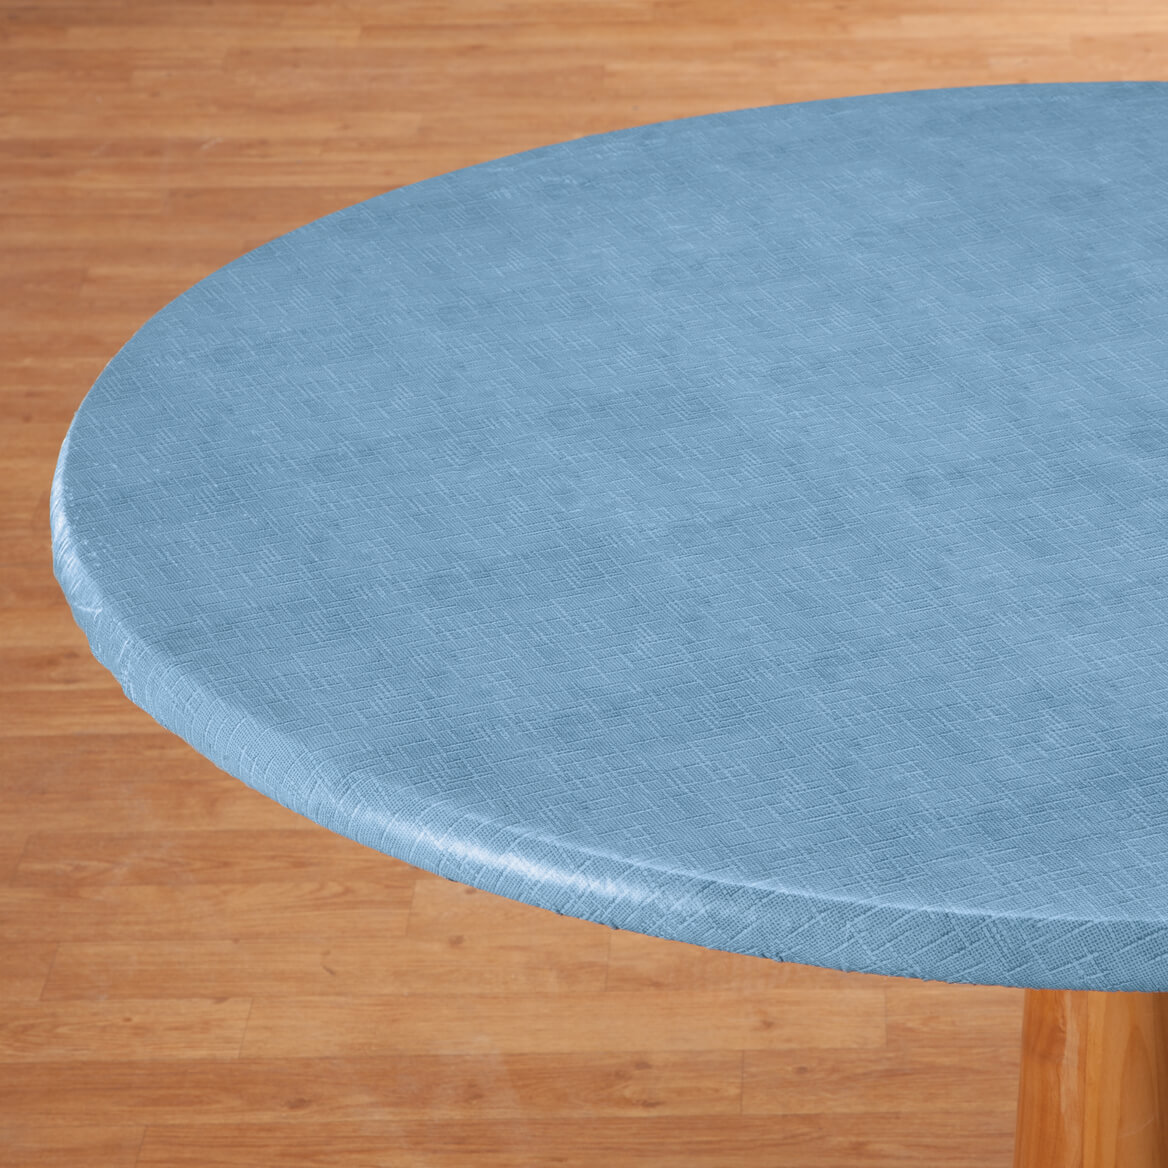 Illusion Weave Vinyl Elasticized Table Cover by HSK-356713